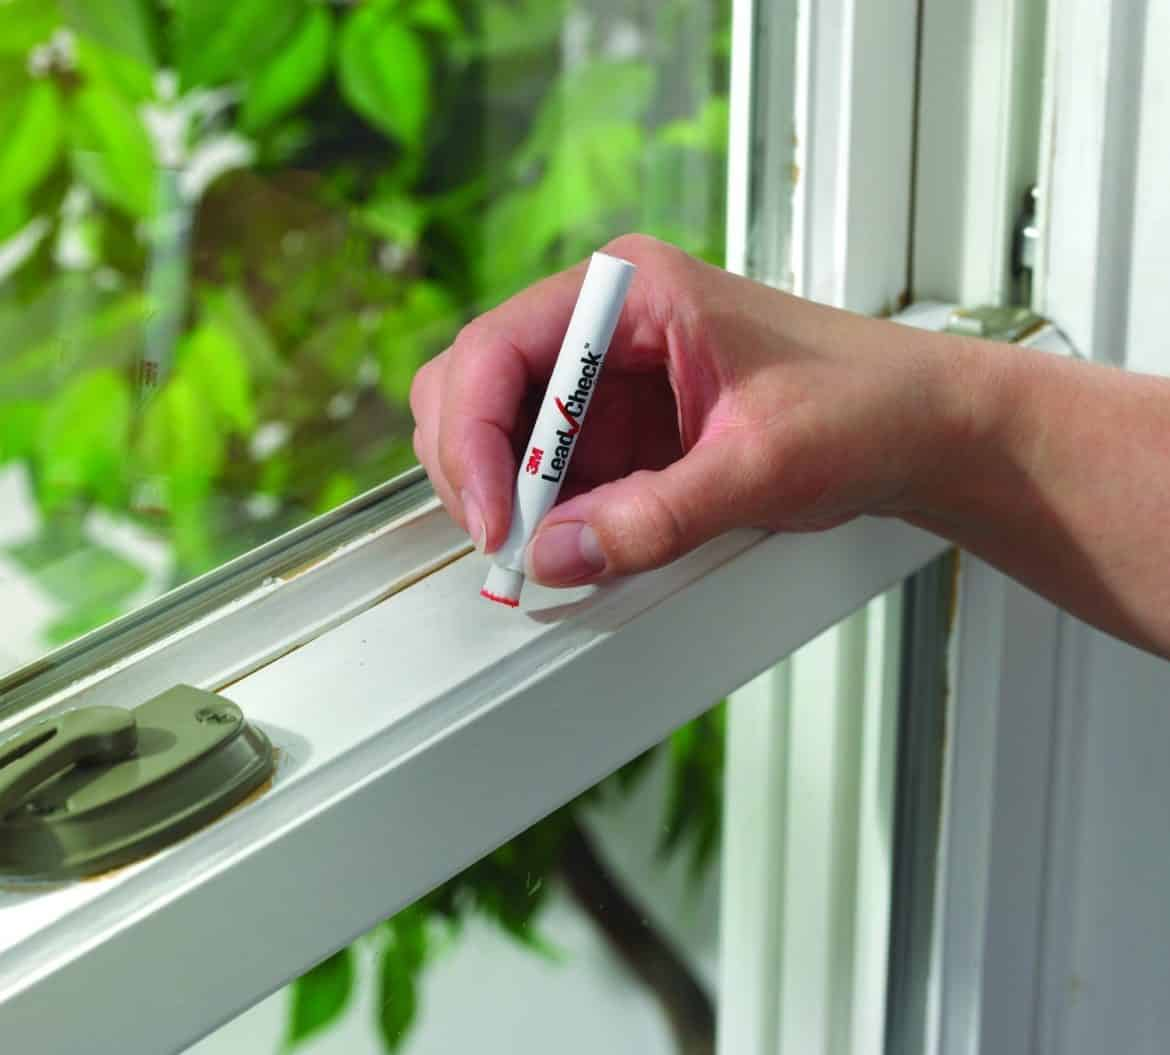 Child proofing: Check if your home has any lead paint with these tester swabs